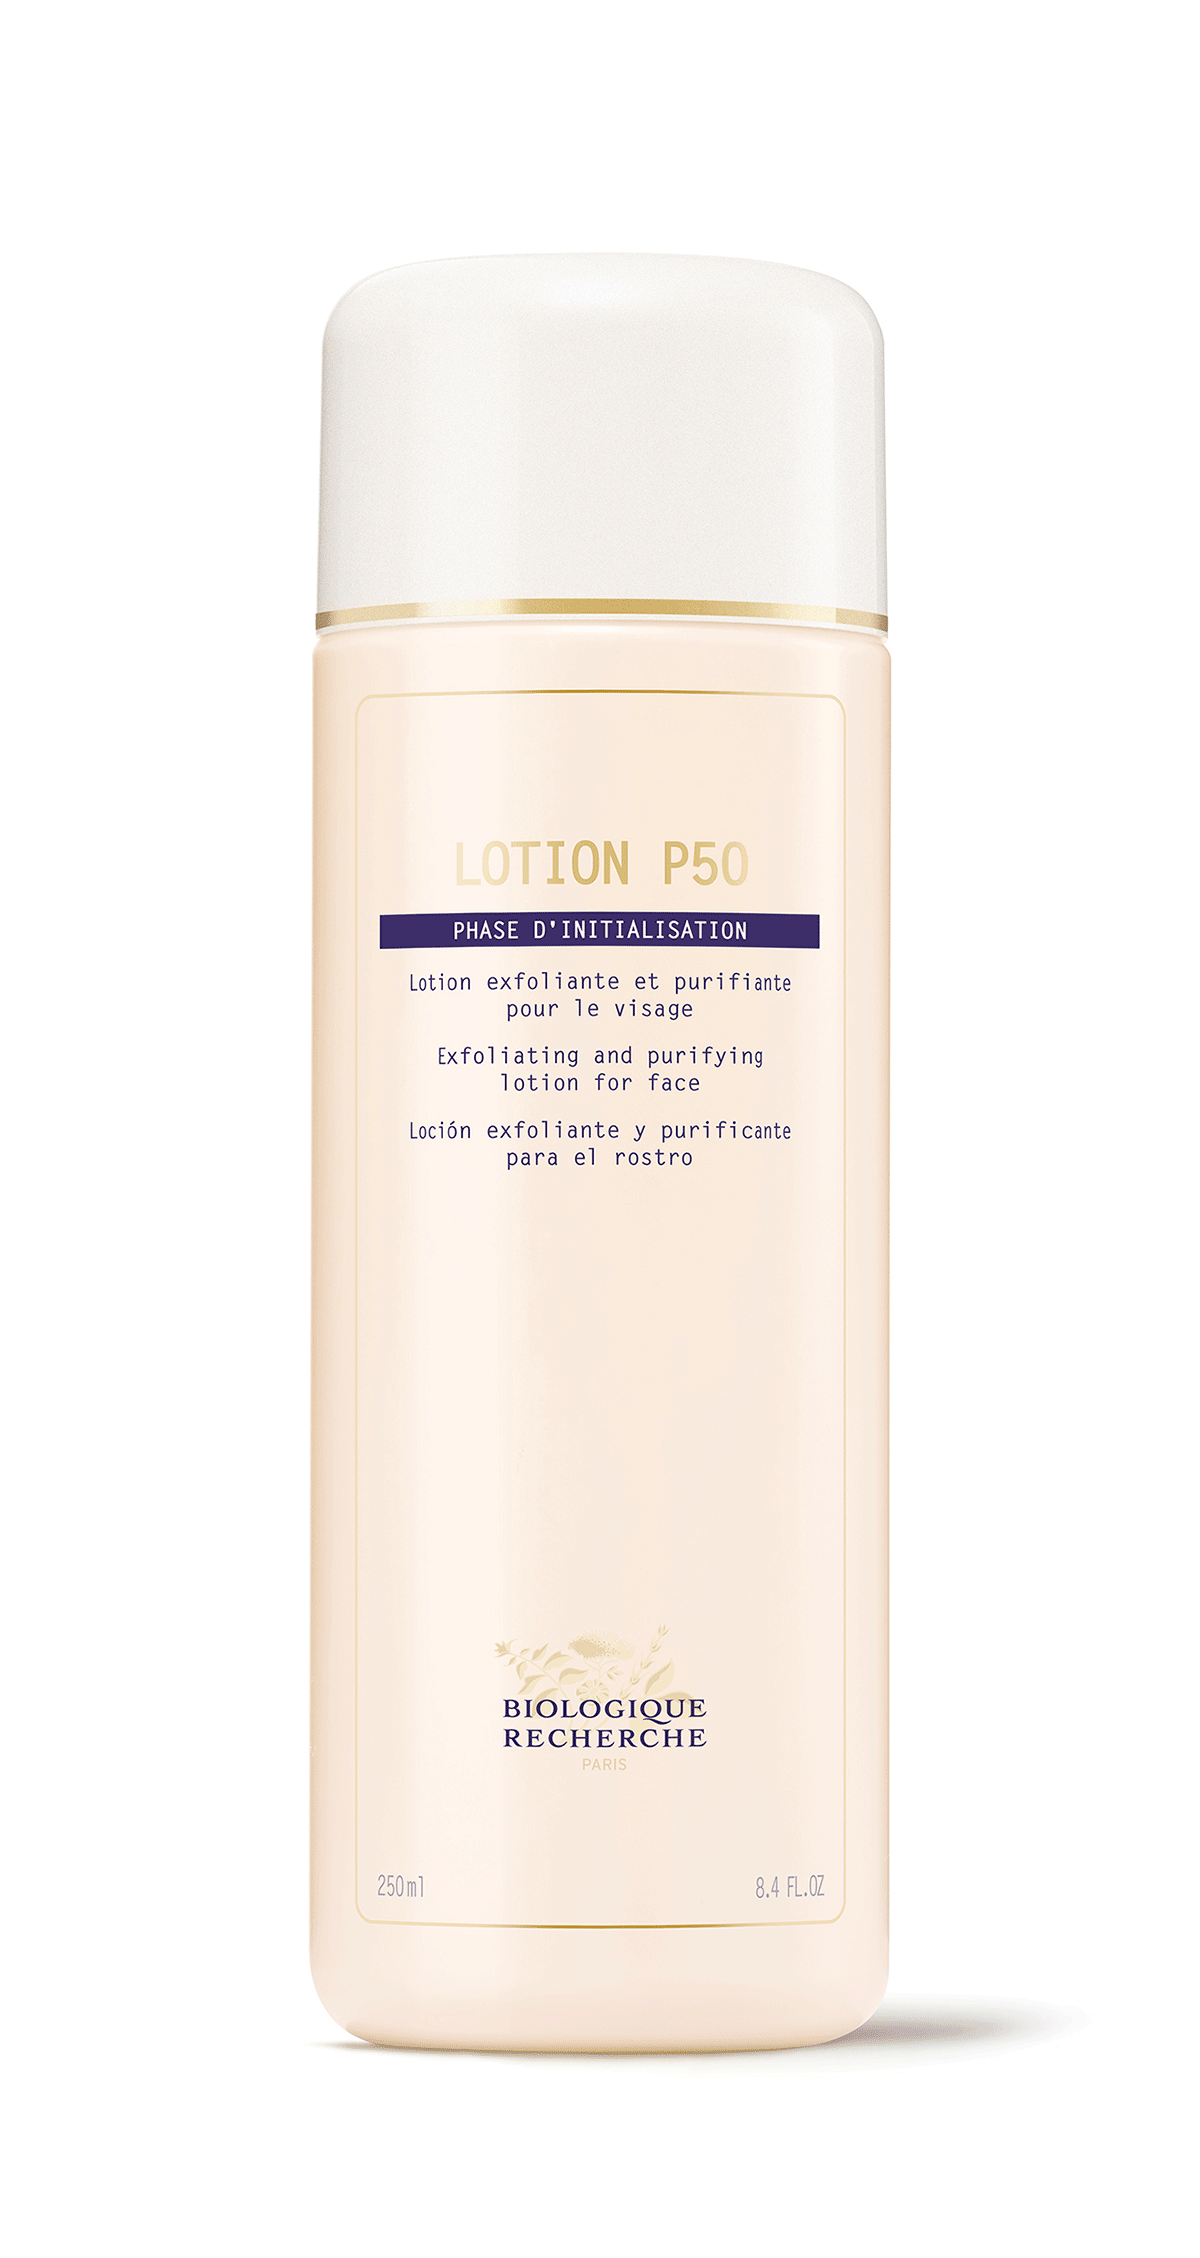 Biologique Recherche Lotion P50. Worldwide Free Shipping - Singapore, Malaysia, Brunei, Indonesia, India, Japan, Hong Kong, USA, UAE, UK, and Europe!